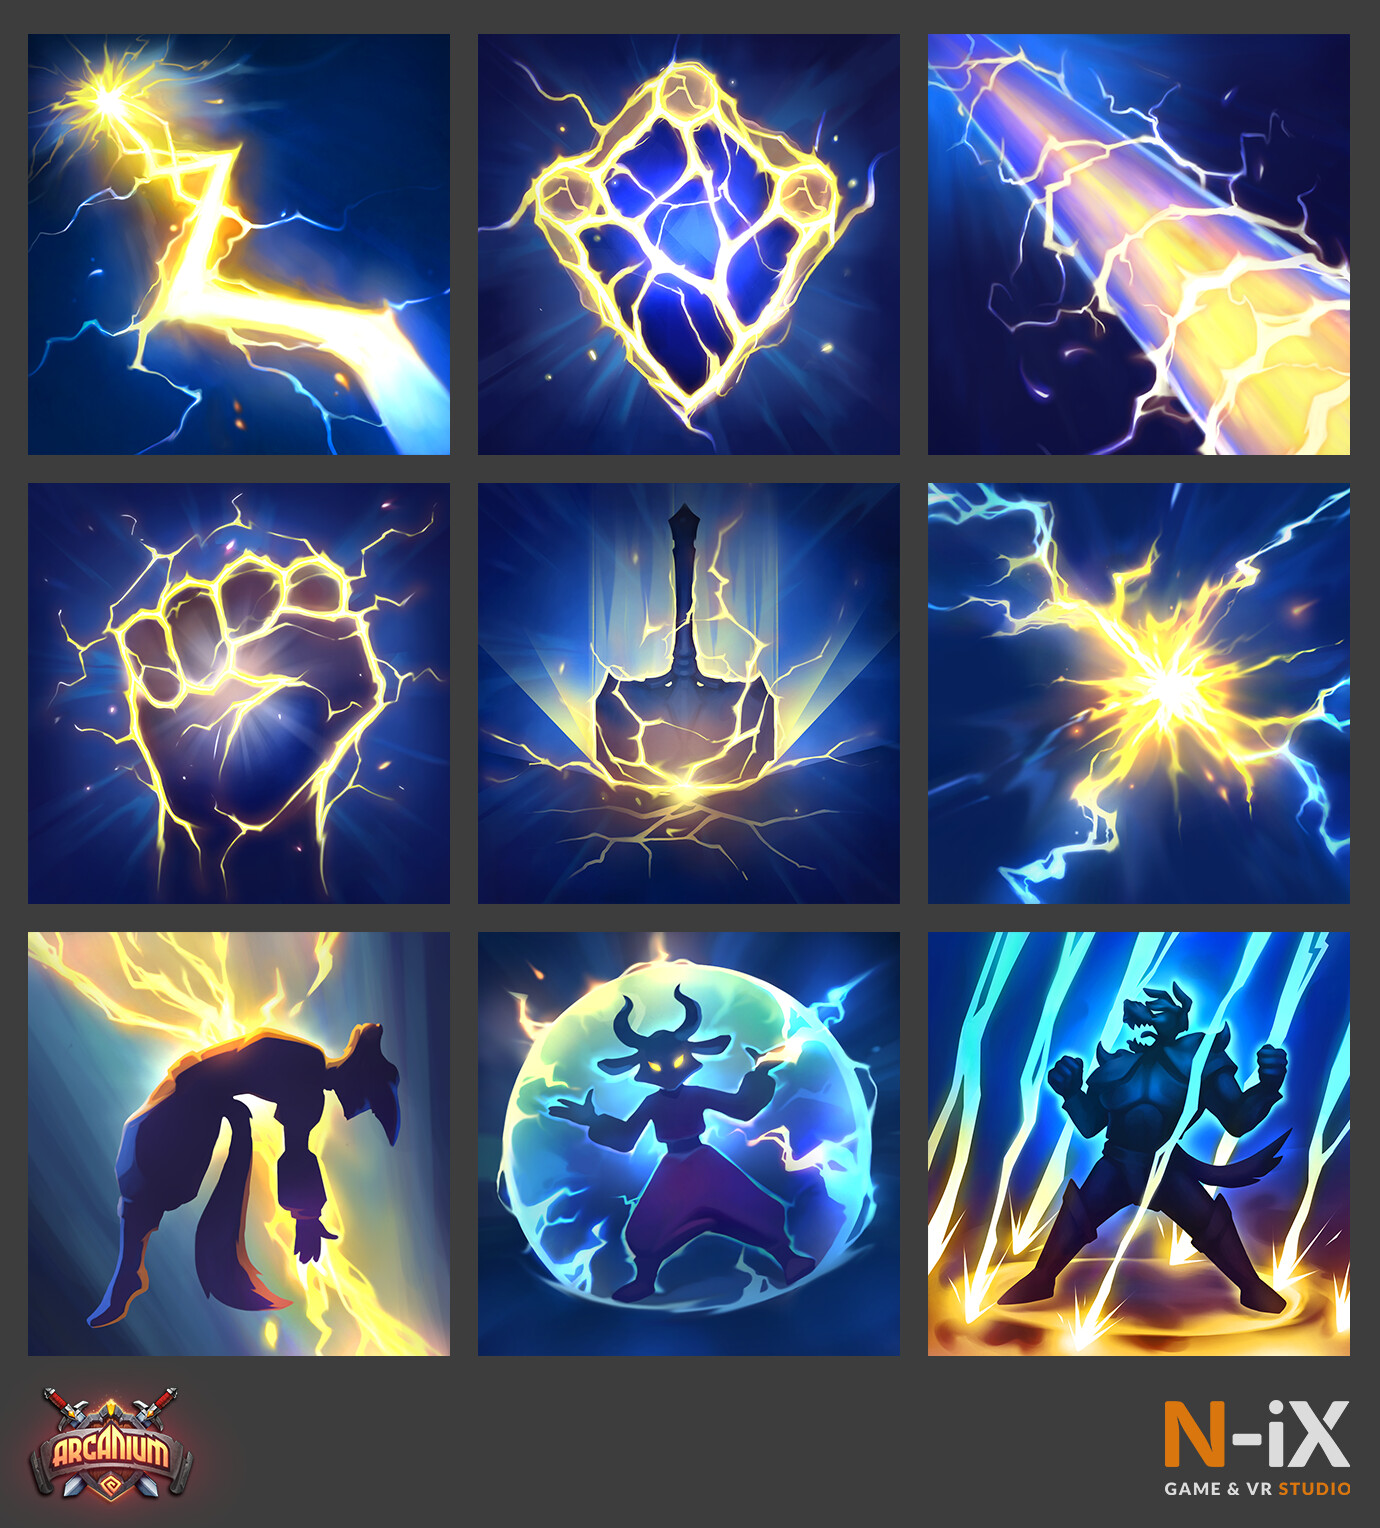 Arcanium